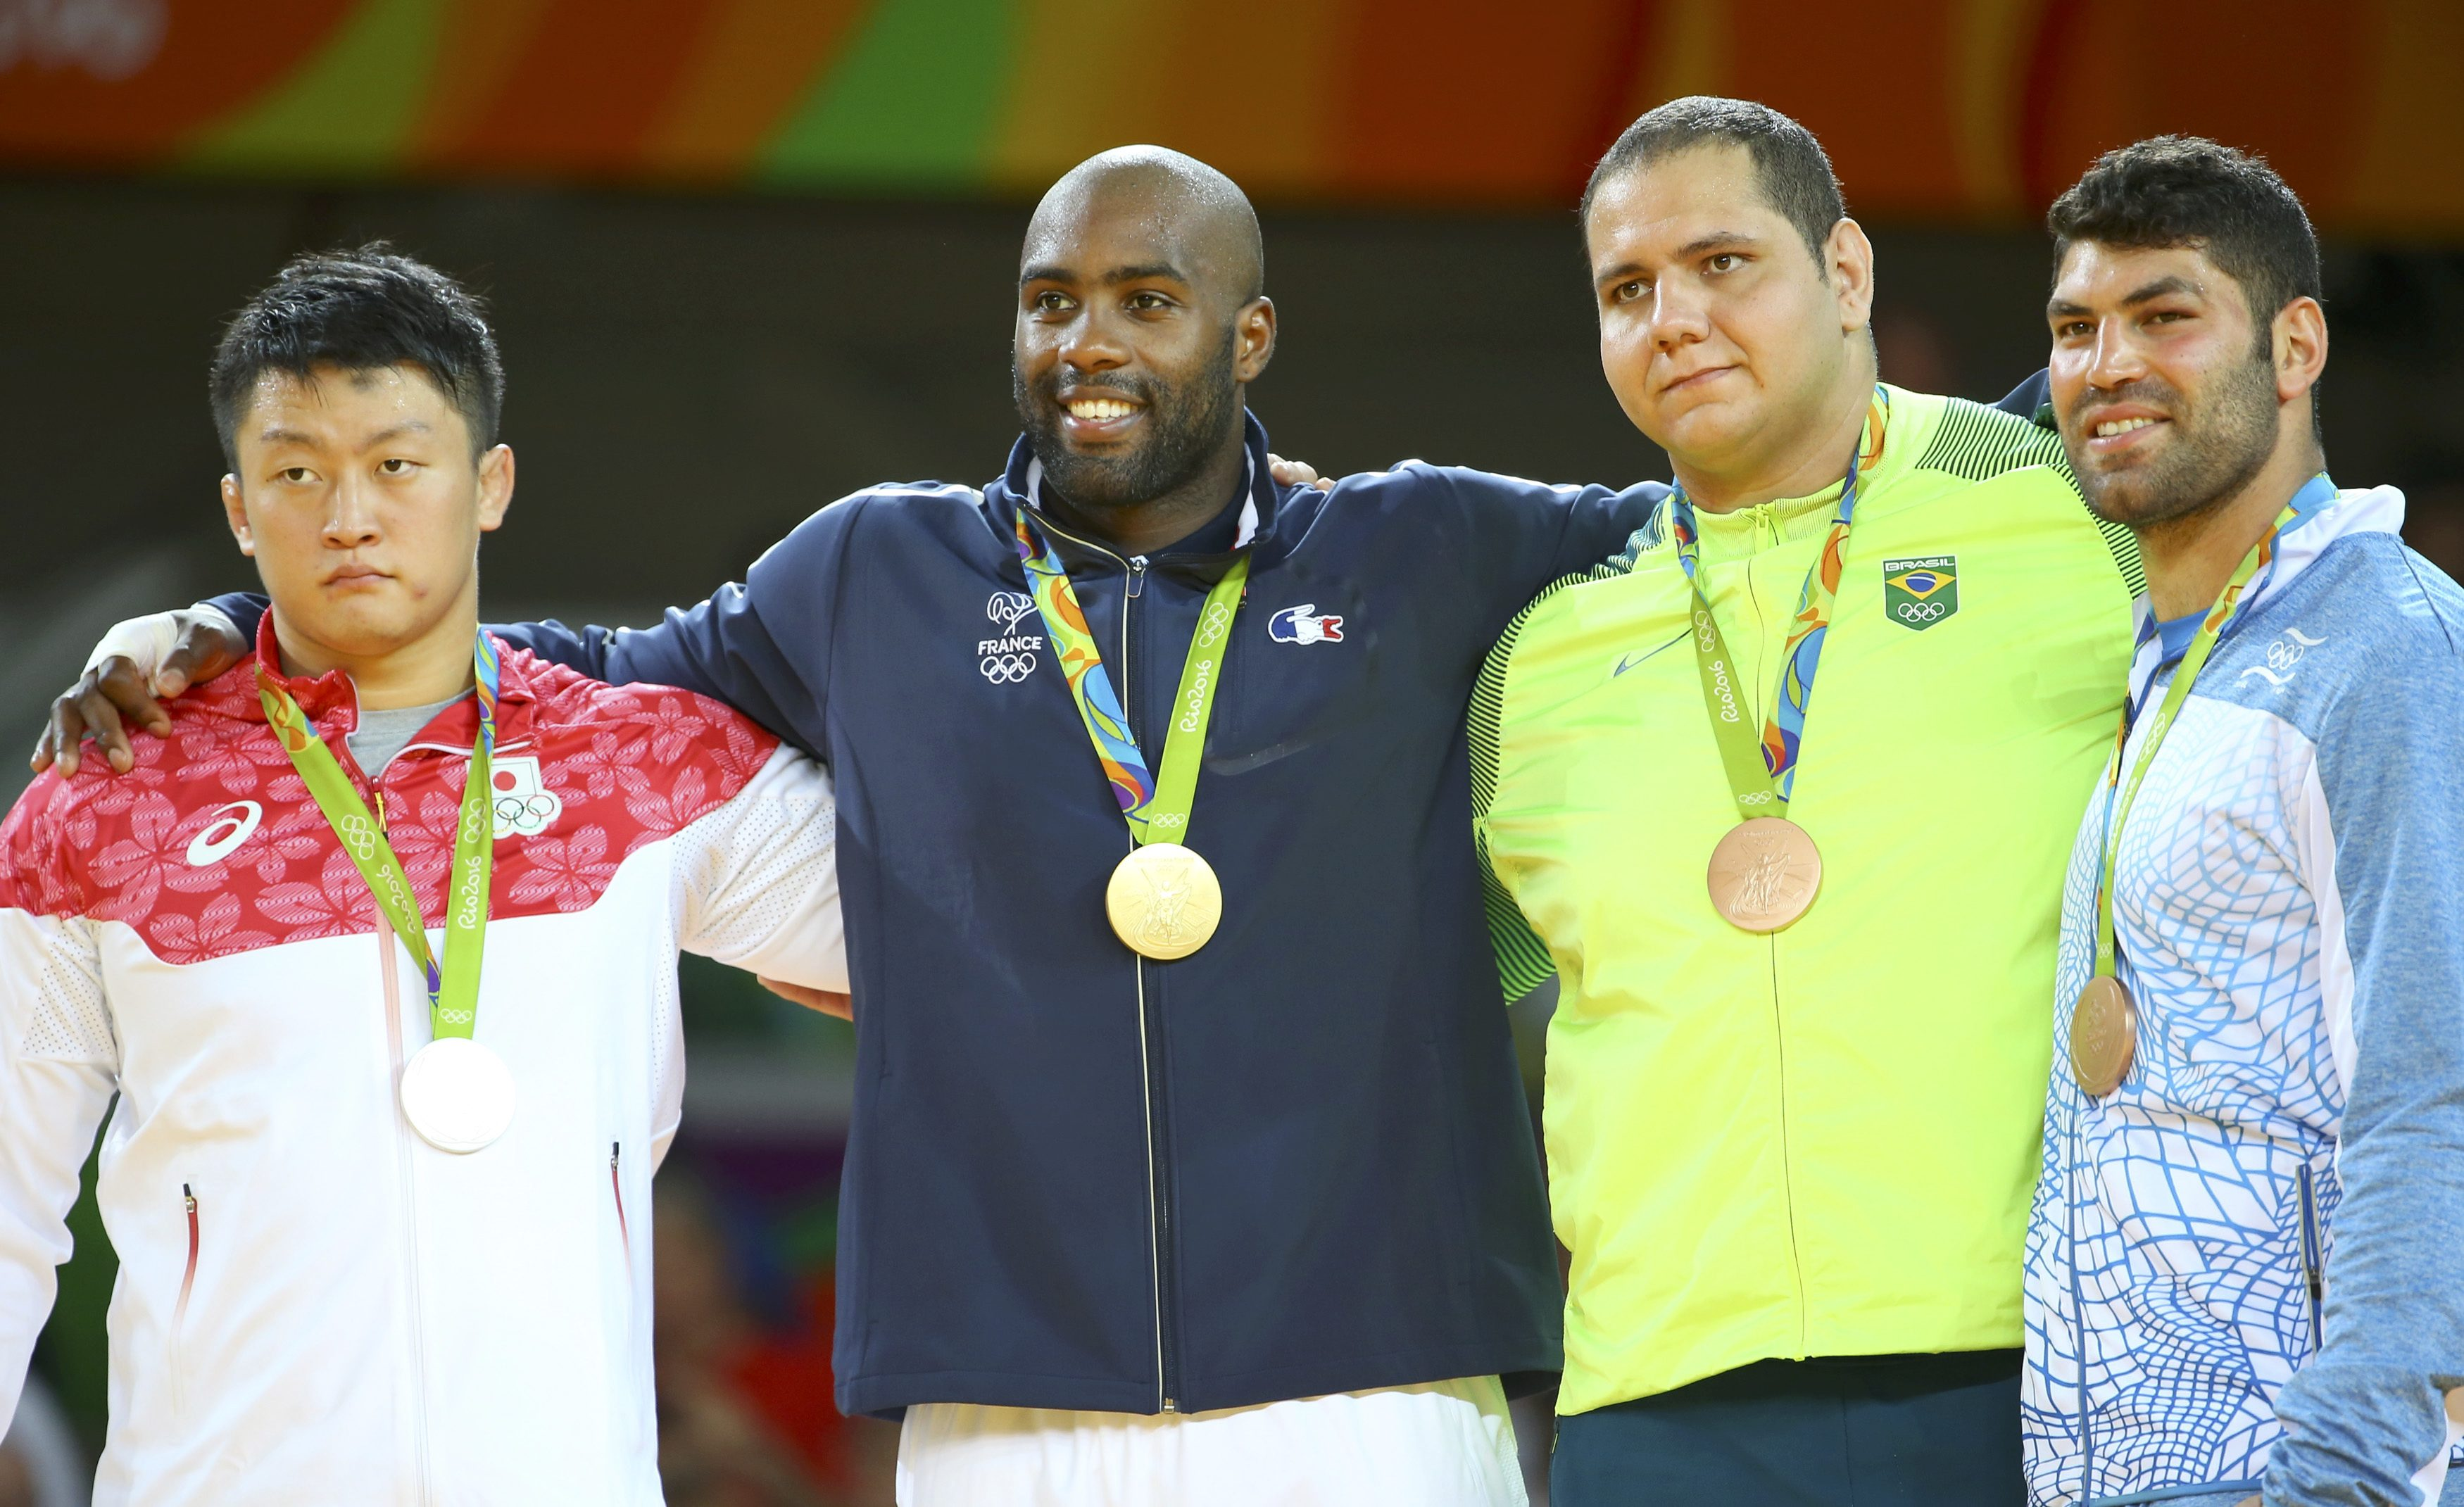 2016 Rio Olympics - Judo - Victory Ceremony - Men +100 kg Victory Ceremony - Carioca Arena 2 - Rio de Janeiro, Brazil - 12/08/2016. (L-R) Hisayoshi Harasawa (JPN) of Japan, Teddy Riner (FRA) of France, Rafael Silva (BRA) of Brazil and Or Sasson (ISR) of Israel attend the ceremony. REUTERS/Murad Sezer FOR EDITORIAL USE ONLY. NOT FOR SALE FOR MARKETING OR ADVERTISING CAMPAIGNS.